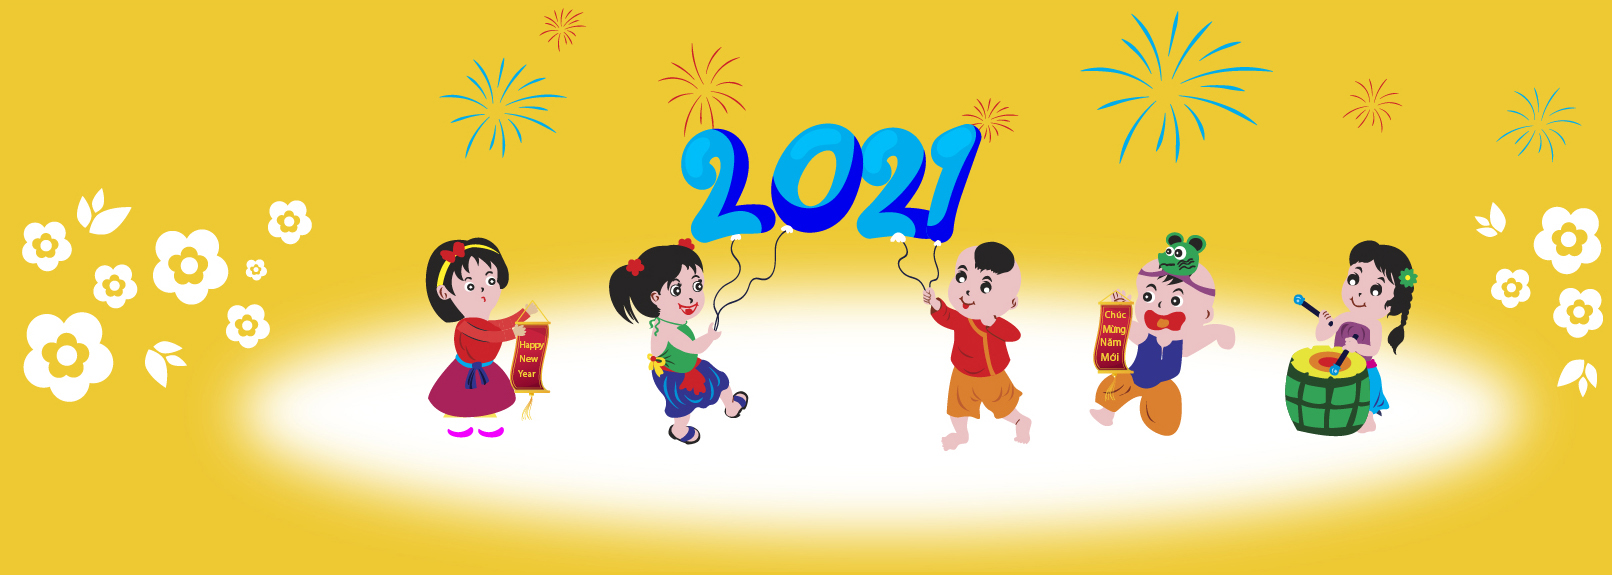 BANNER web HAPPY NEW YEAR 2021